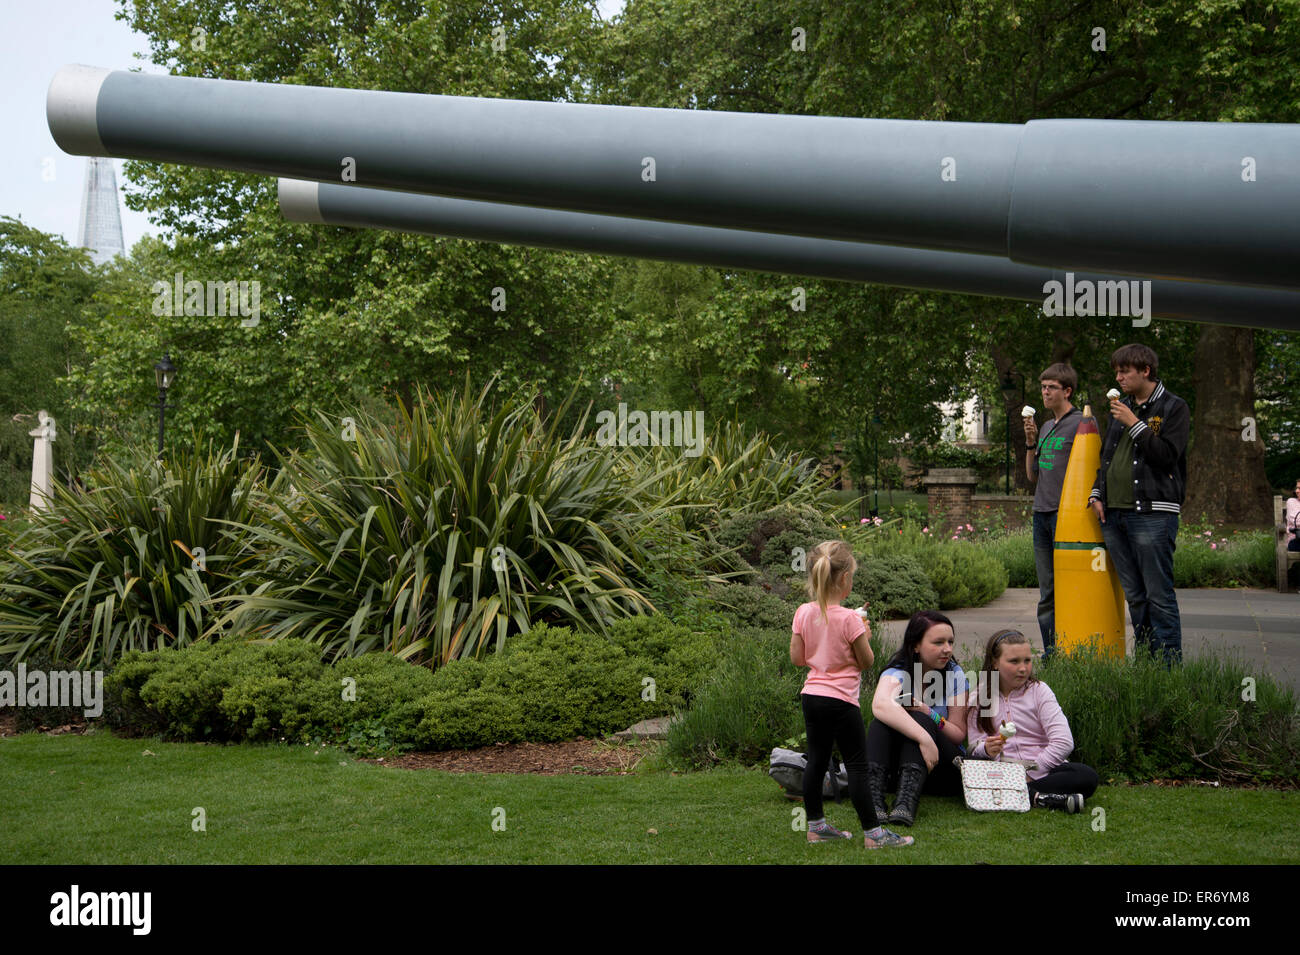 Lambeth. Imperial War Museum. Young people eat ice creams next to two 15' naval guns outside the museum - Stock Image